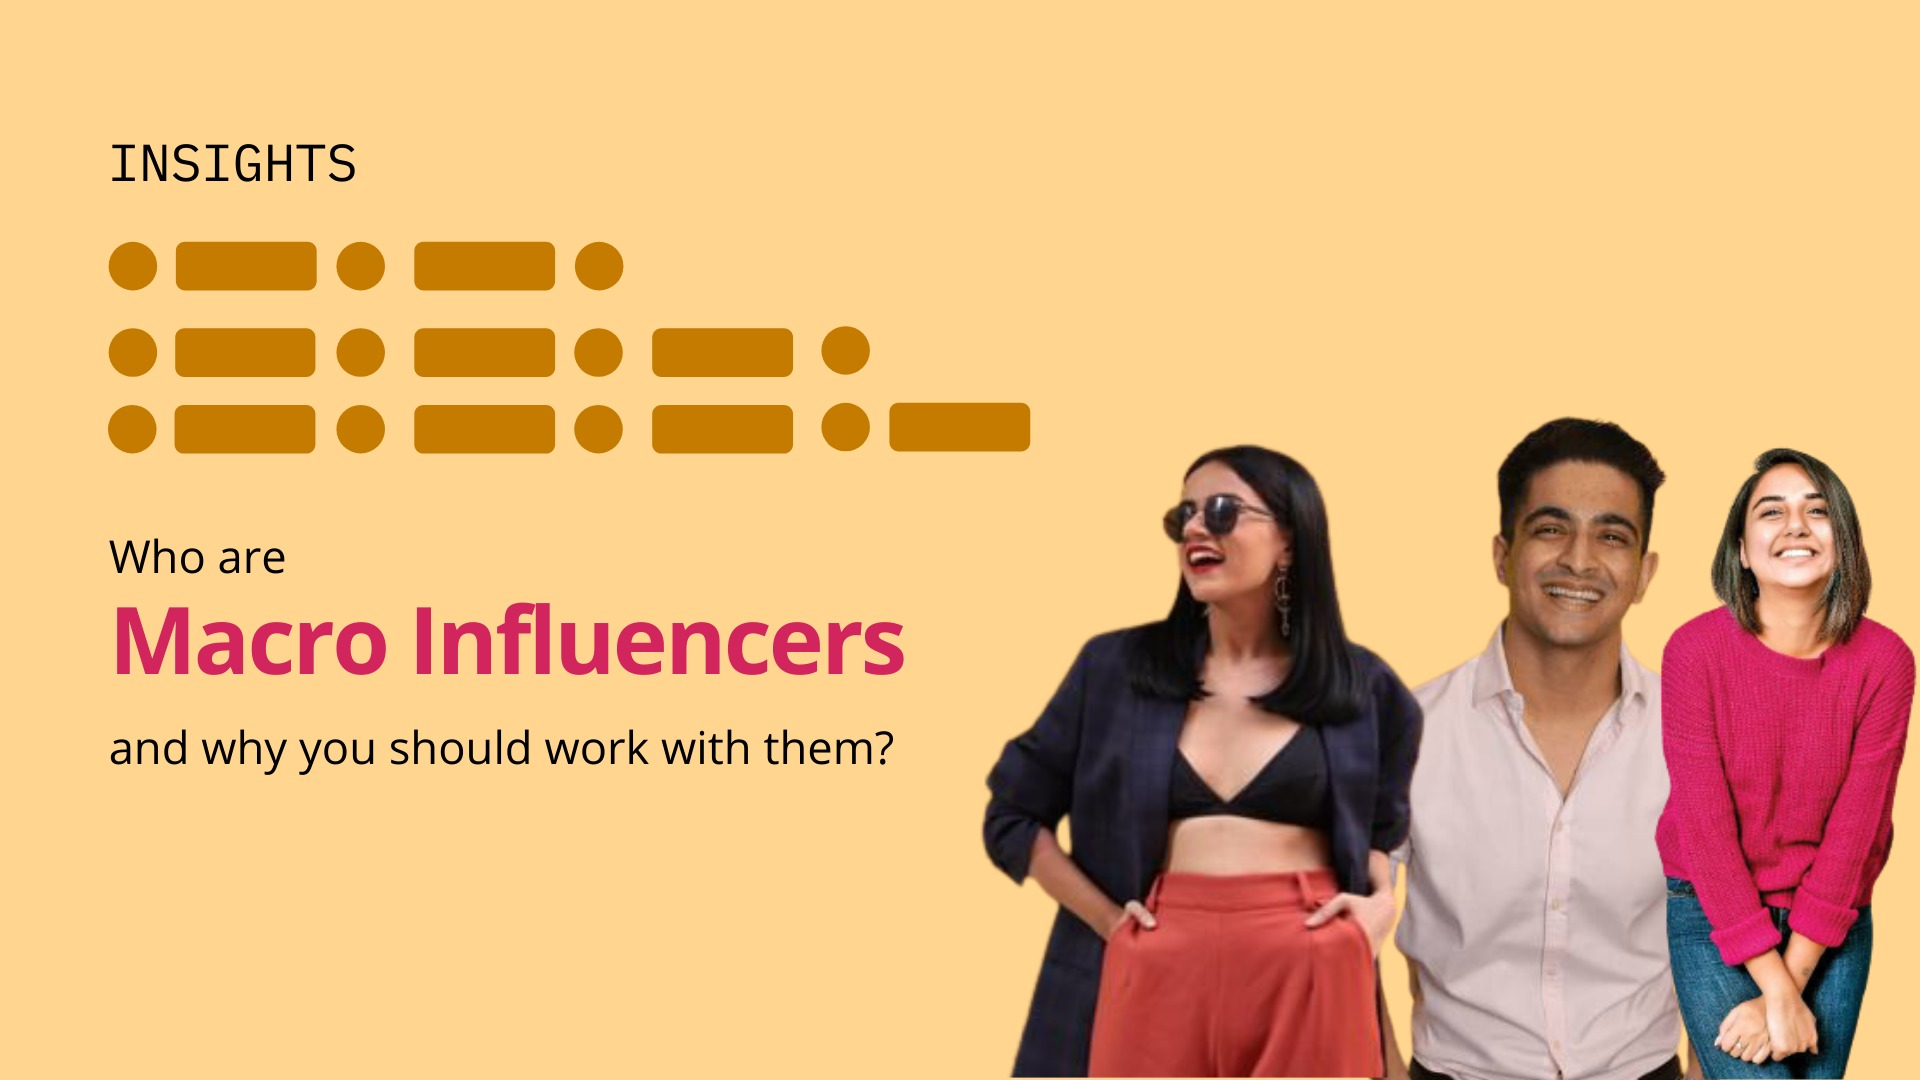 Working with Macro-Influencers - blog by Winkl (An influencer marketing platform)